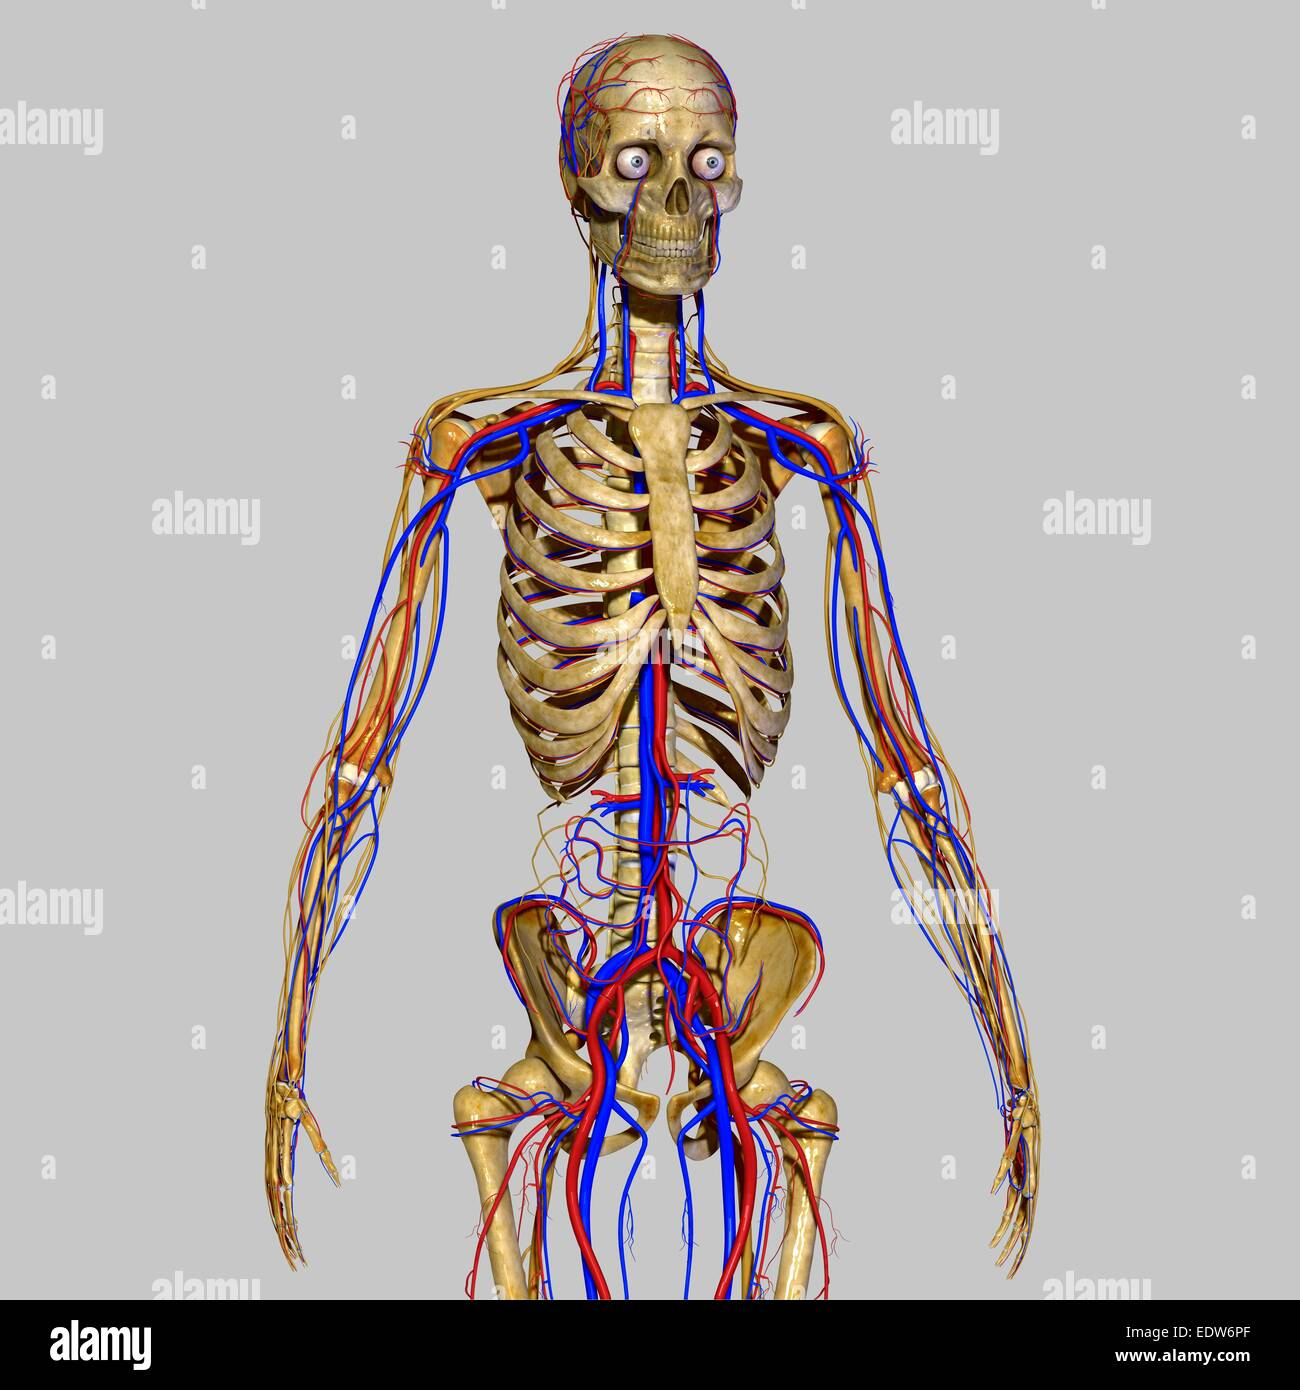 Skeleton With Nervous System Stock Photo